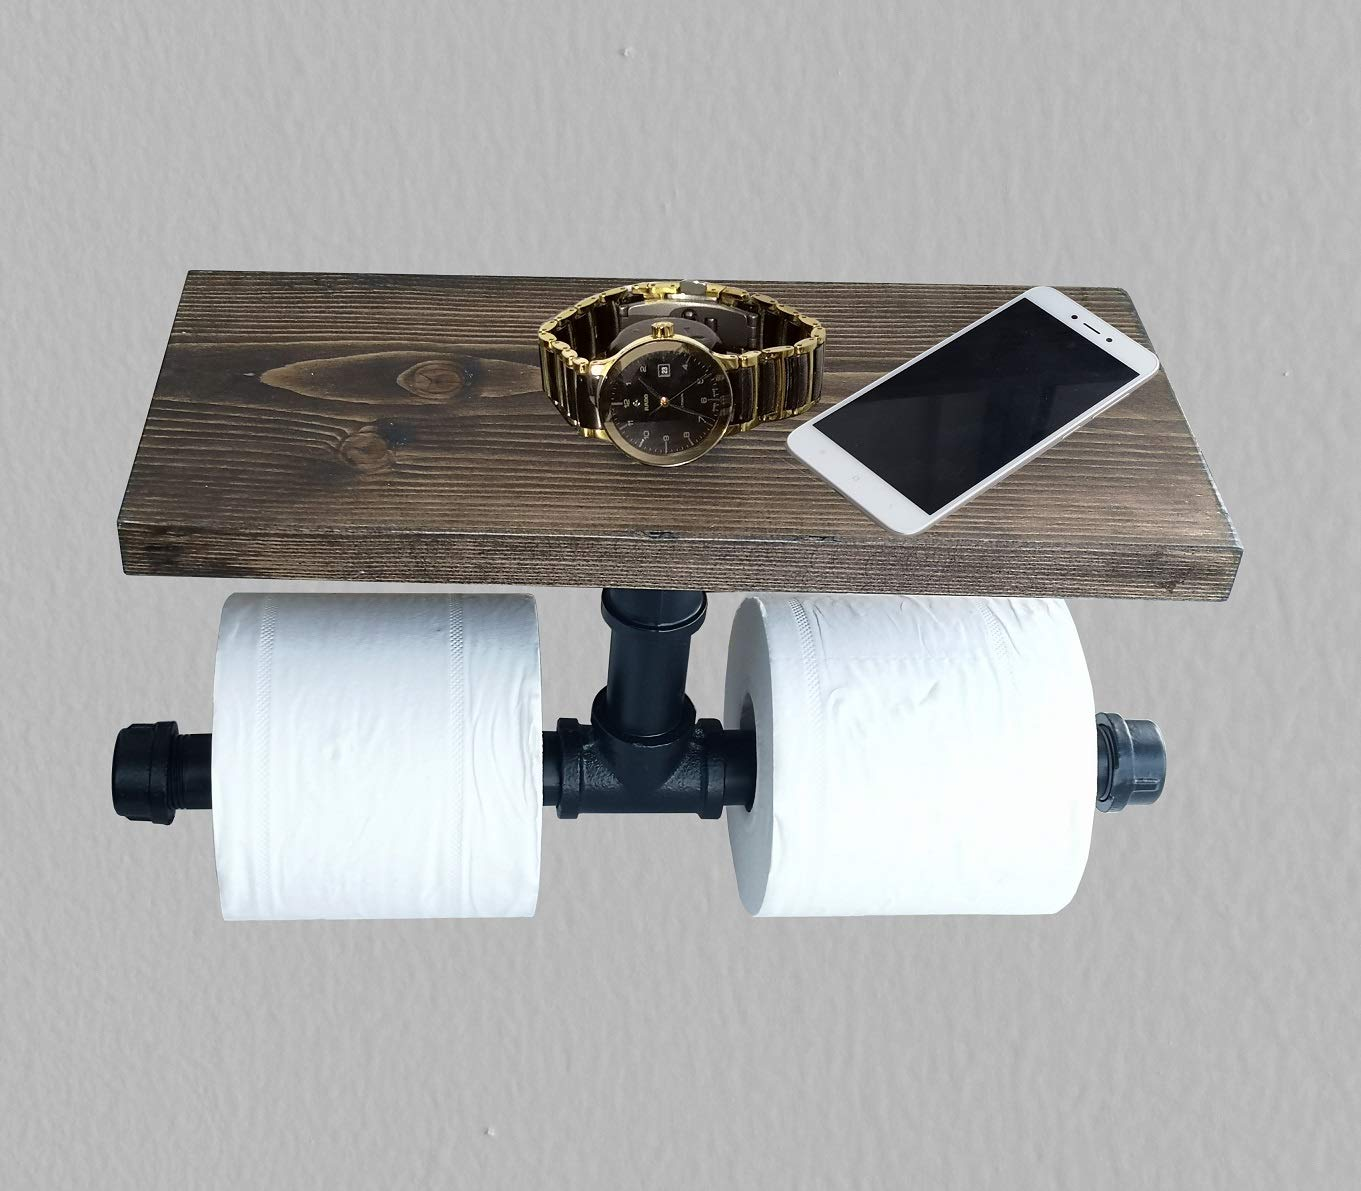 2 Roll Toilet Tissue Paper Holder and Multi-Purpose Shelf for Mobile Phone Storage in Bath,Rustic Style Pipe Design Carbon Black Wood & Black Metal Wall Mounted Bathroom Shelf/Toilet Paper Roll Holder